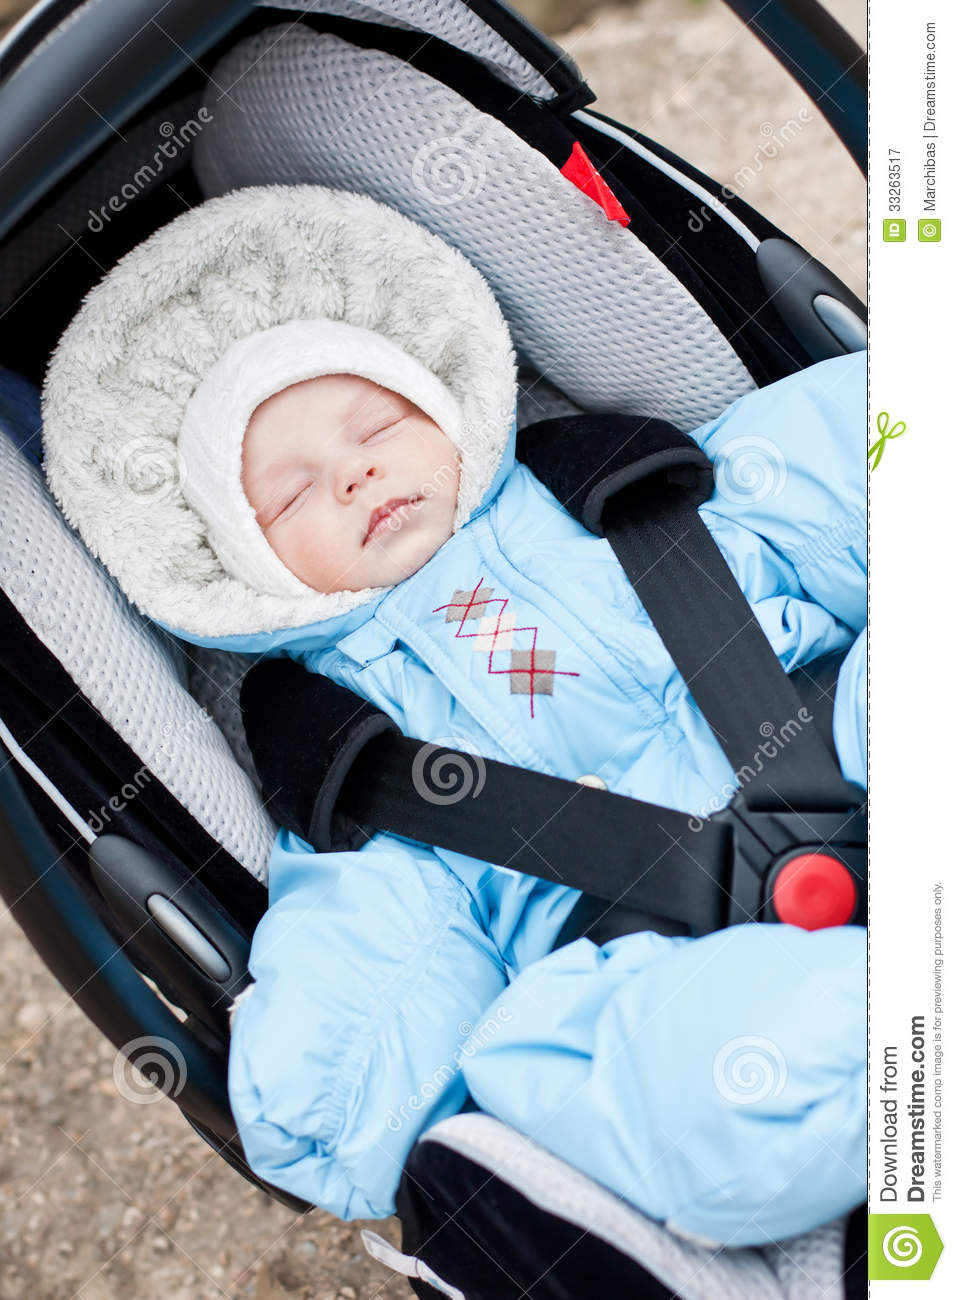 Newborn Sleeping In The Car Seat Stock Image  Image 33263517